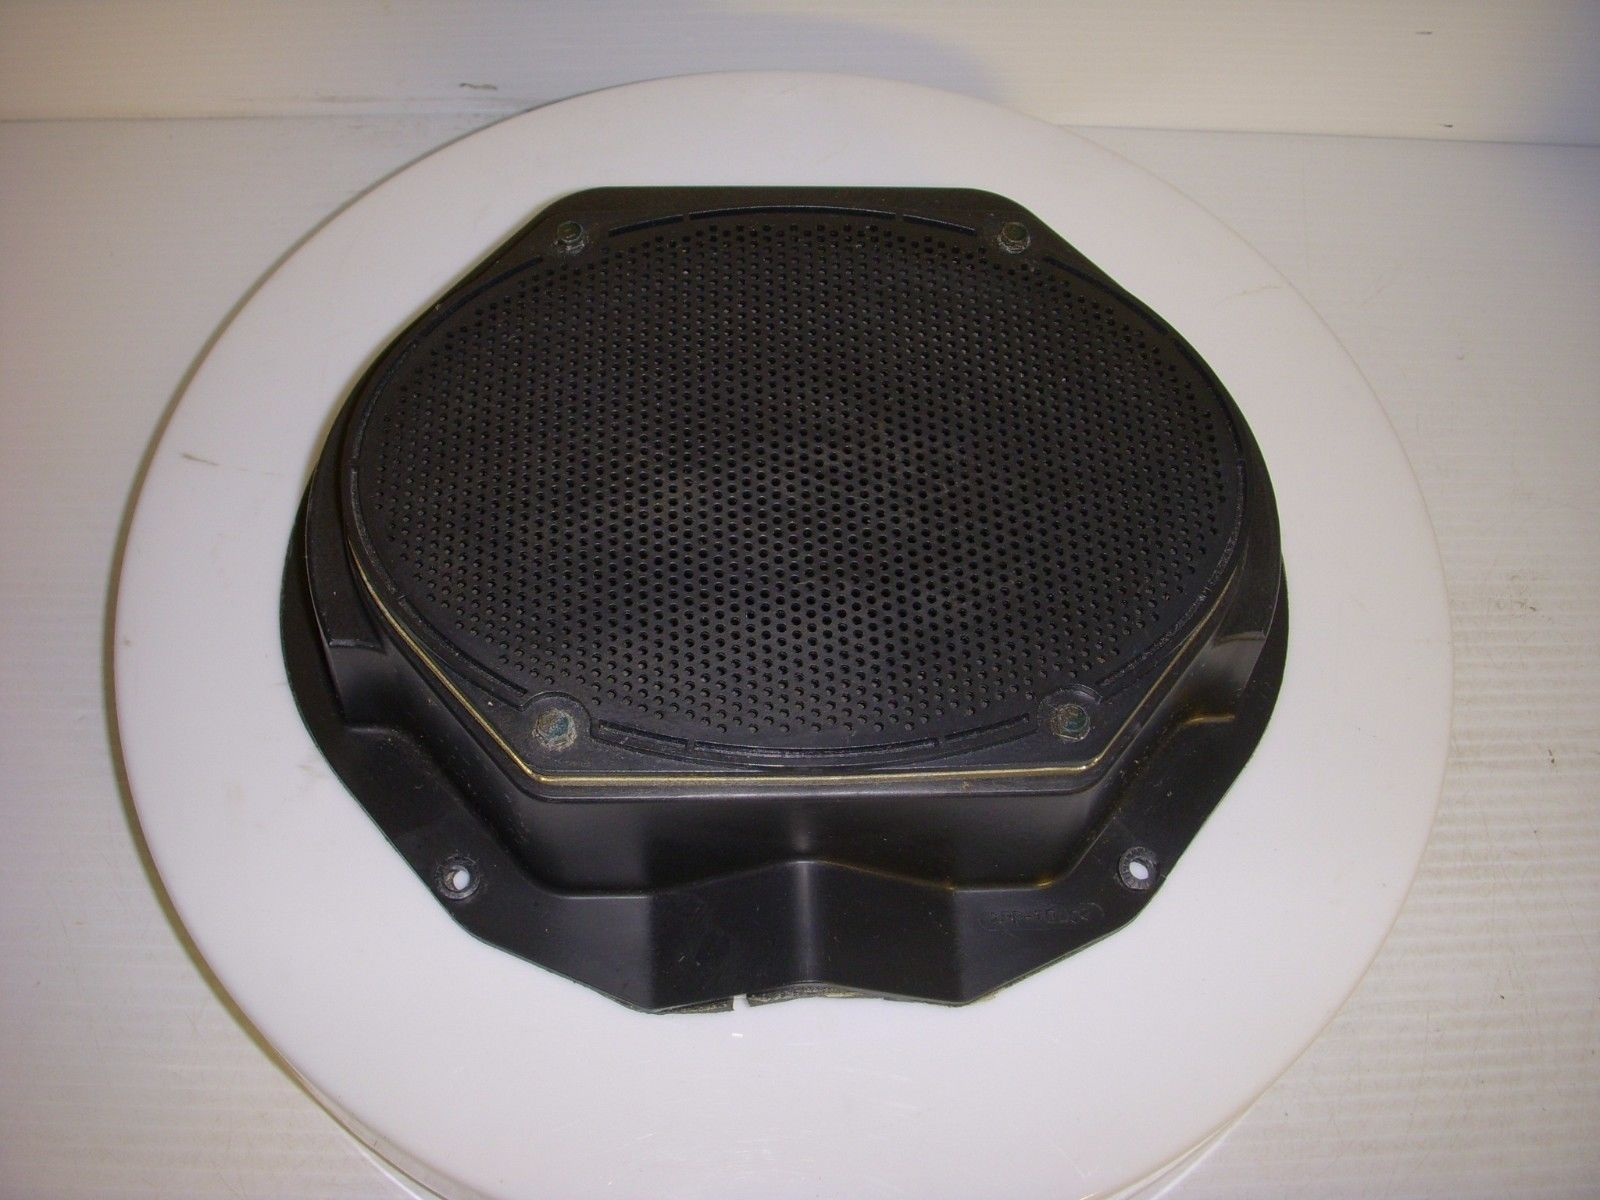 Ford Expedition 2002 Speaker Interior Driver Rear AUDIO Music Factory OEM